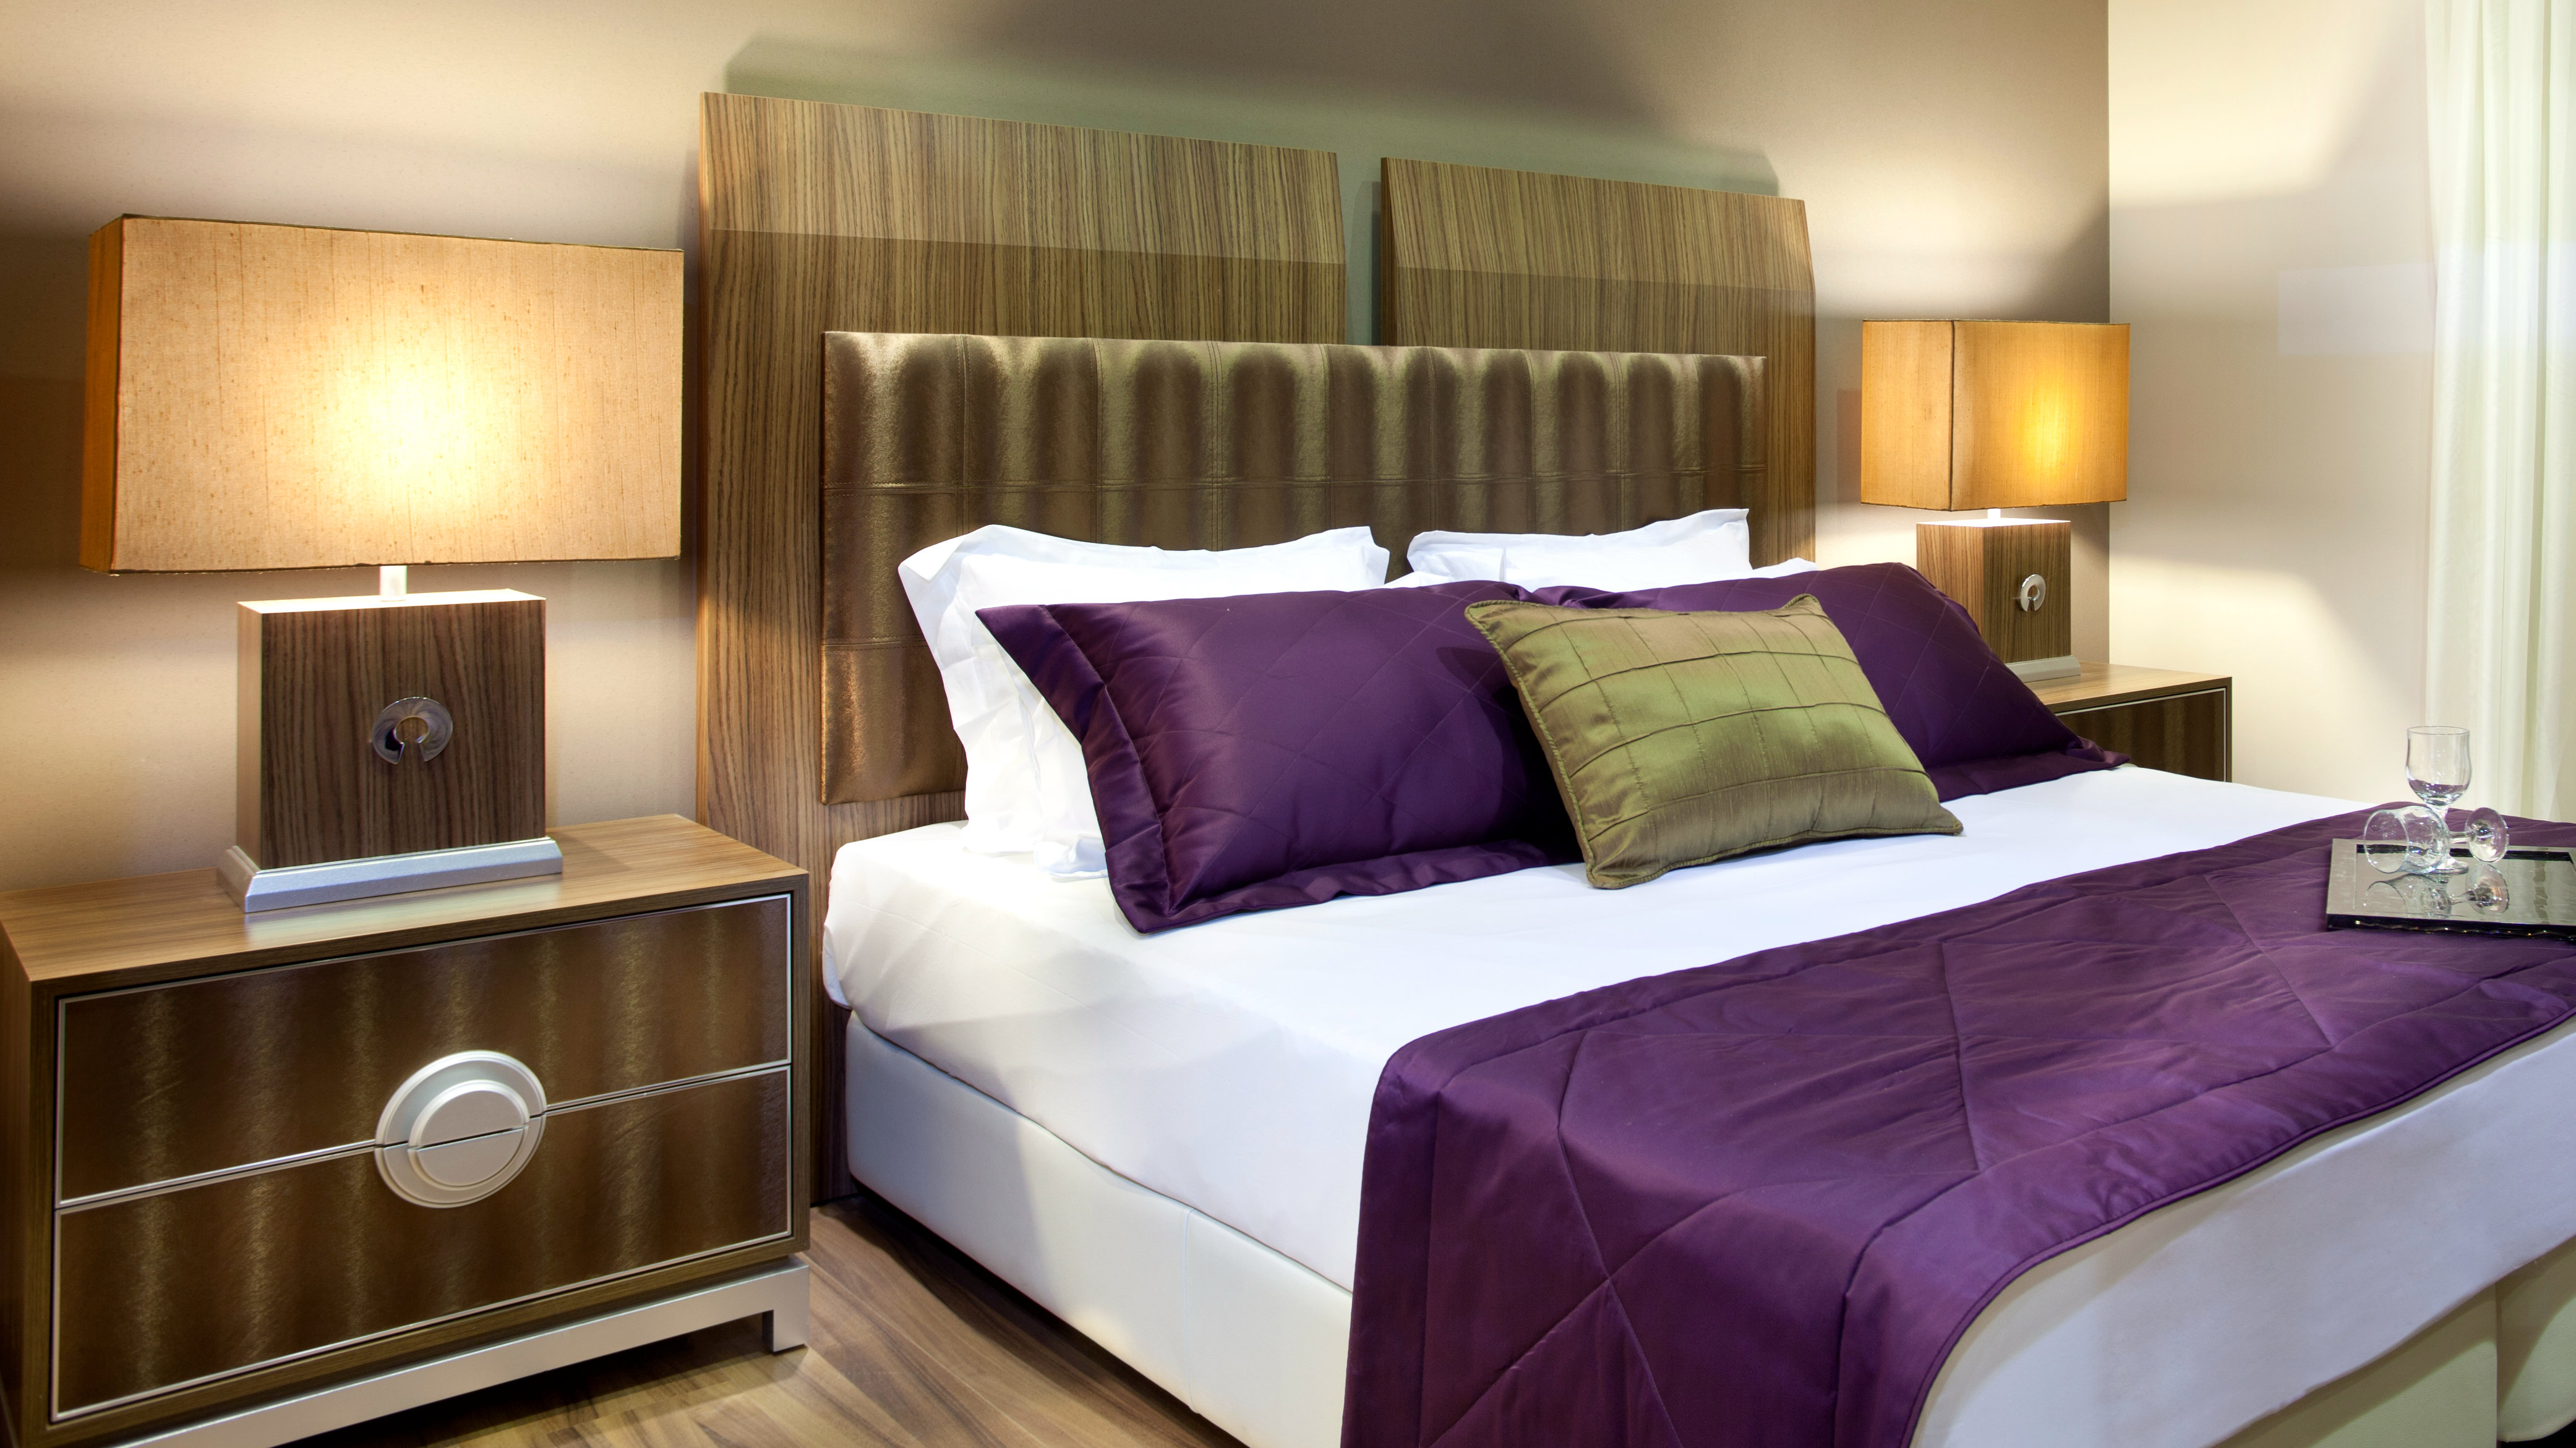 10 Tips For Hotel Lighting Ledvance,Types Of Window Coverings For French Doors